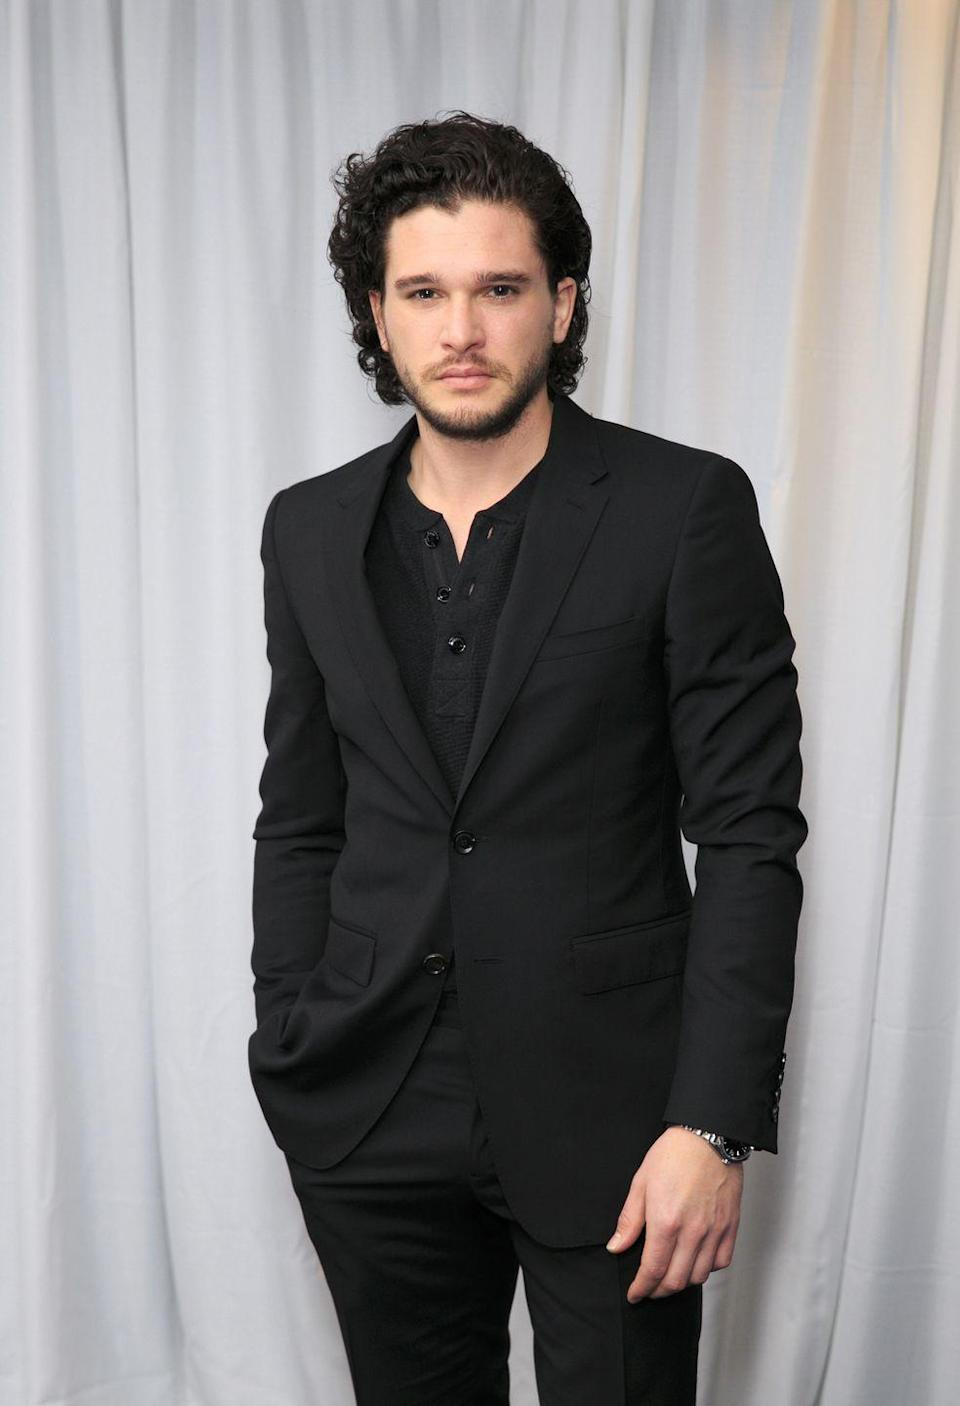 """<p>The critically panned <em>Pompeii</em> was Harington's first role after being cast as Jon Snow in <em>Game of Thrones</em> and while the movie is not well-reviewed, his <a href=""""https://www.cosmopolitan.com/entertainment/movies/a12773418/kit-harington-movie-binge/"""" rel=""""nofollow noopener"""" target=""""_blank"""" data-ylk=""""slk:shirtless scenes from the film"""" class=""""link rapid-noclick-resp"""">shirtless scenes from the film</a> are both very impressive and also on YouTube.</p>"""